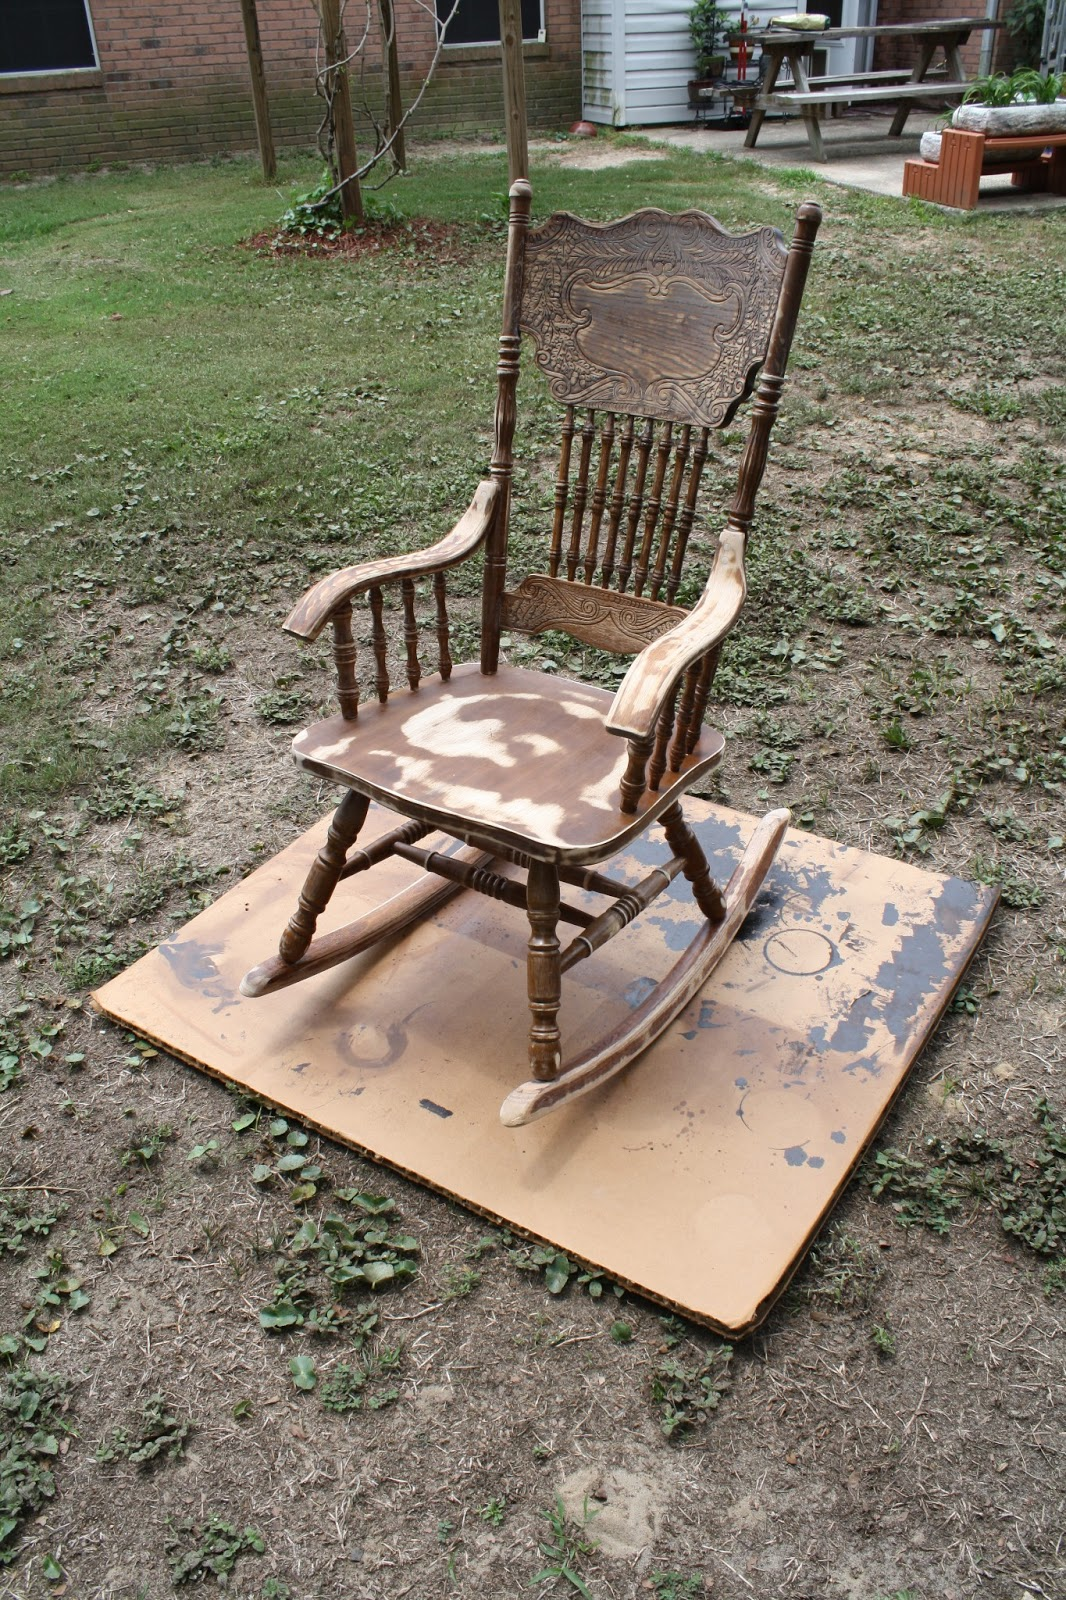 how to make a rocking chair not rock cloth office chairs with wheels la bella colori my 39n and i won